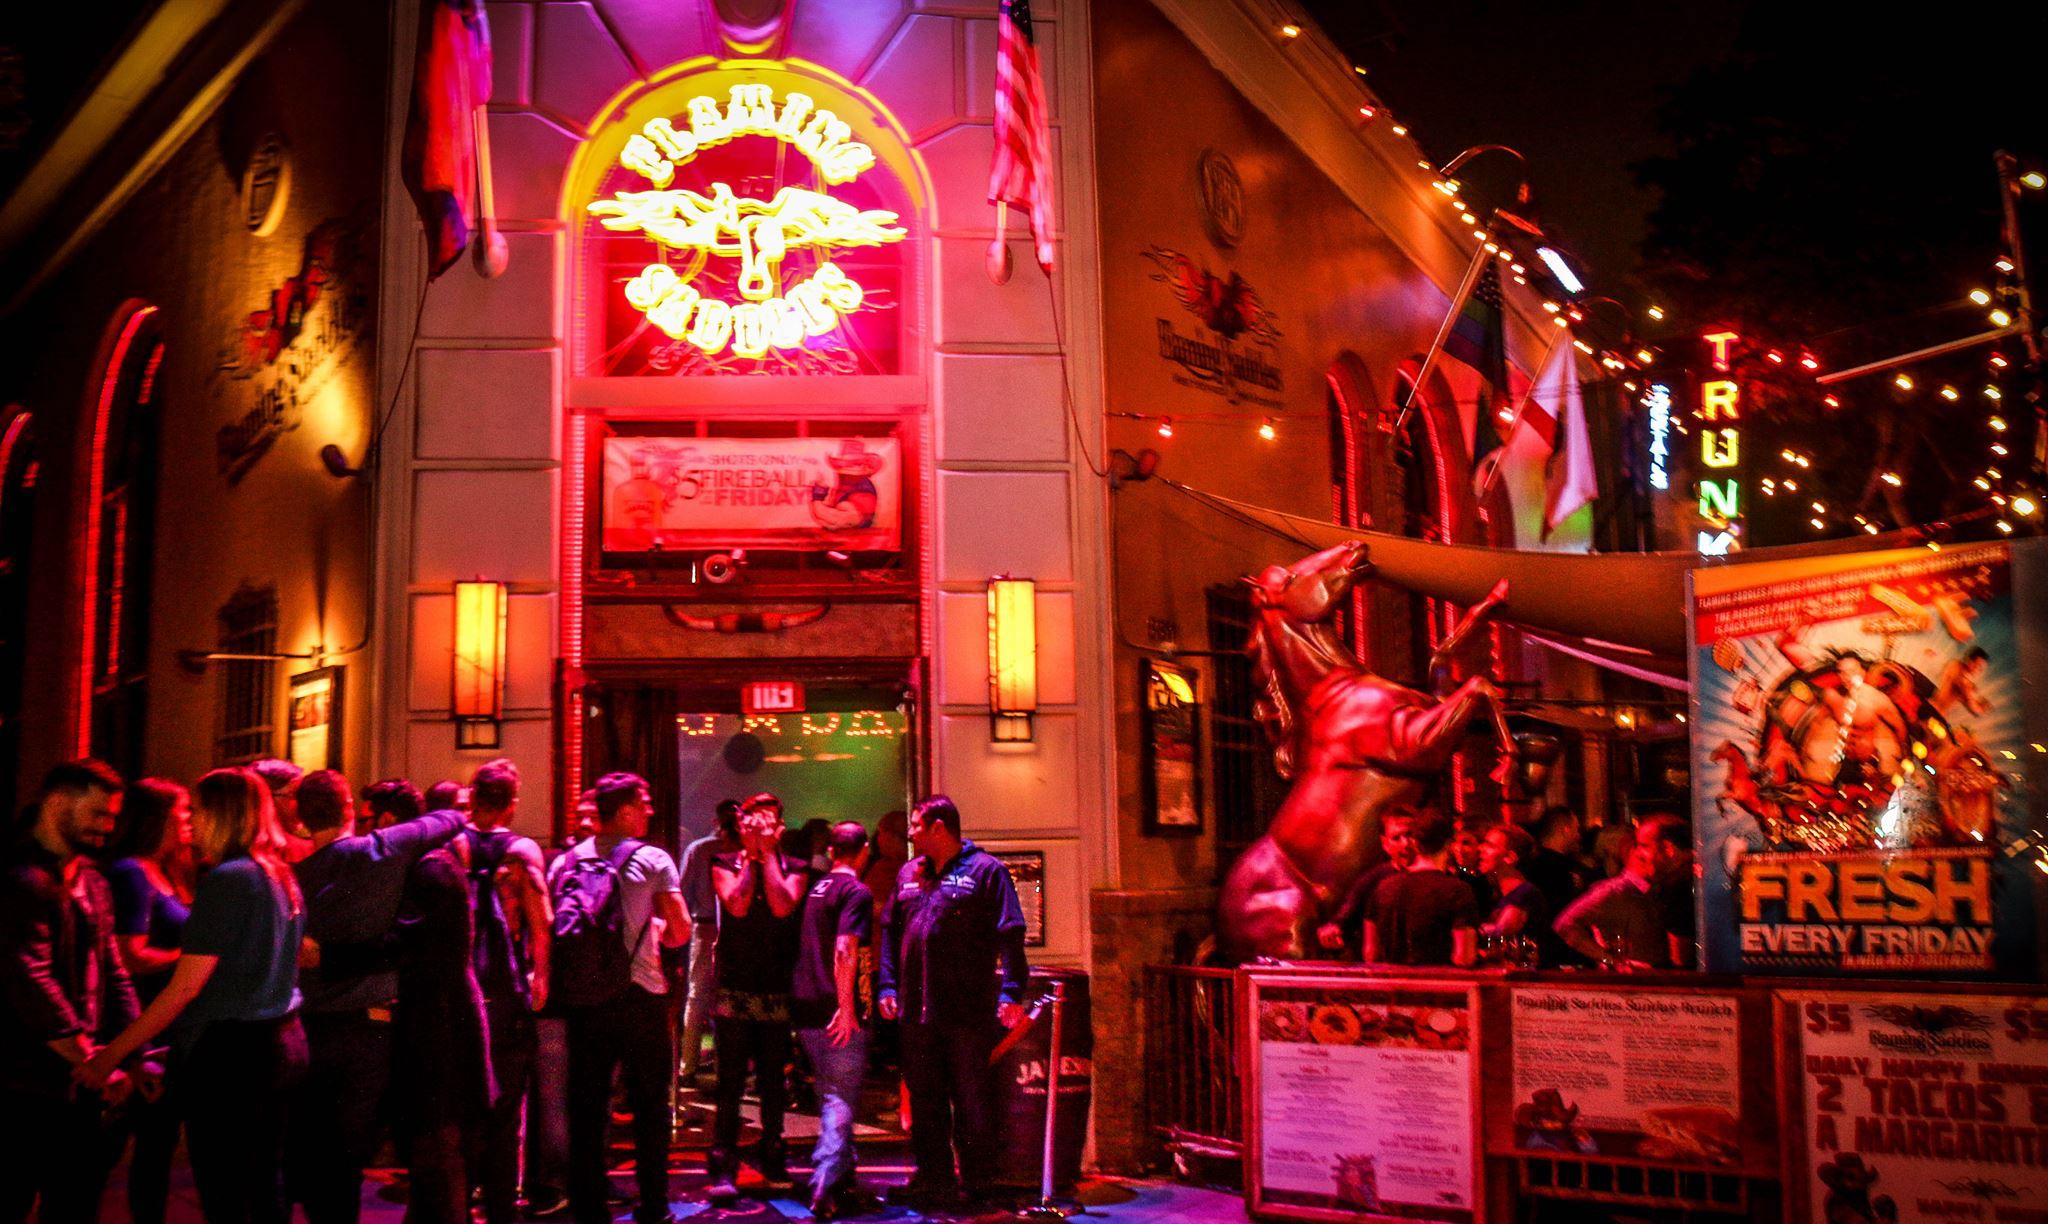 A nightlife scene in front of a neon-lit gay bar in West Hollywood, CA.